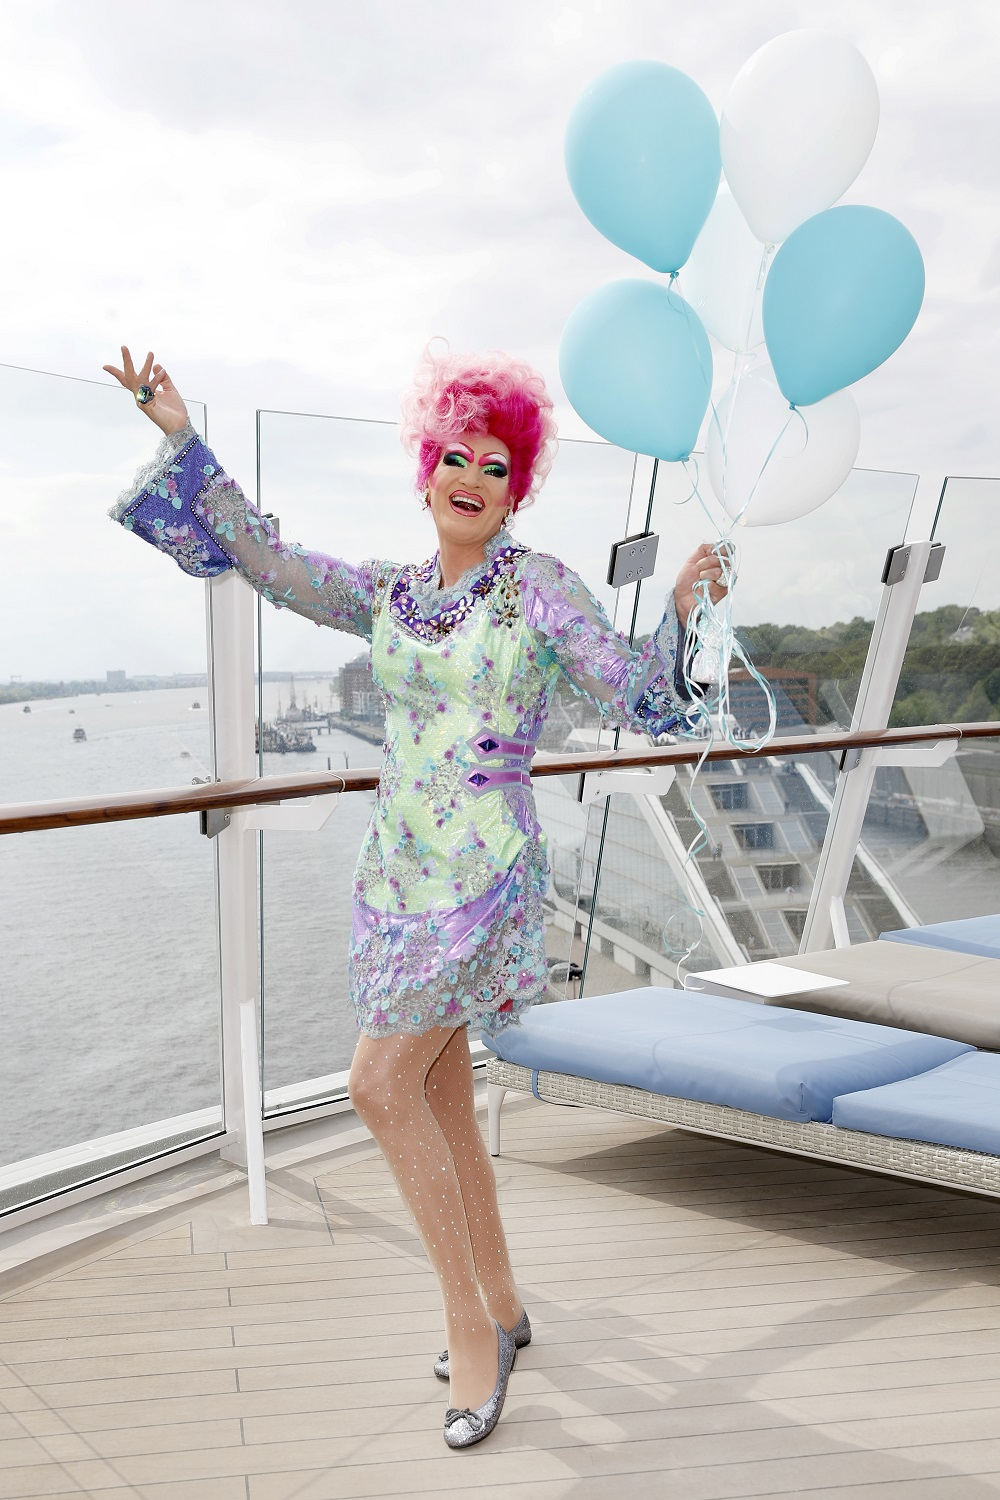 Stammgast bei Mein Schiff Taufen: Olivia Jones (Photo by Franziska Krug/Getty Images for TUI Cruises)